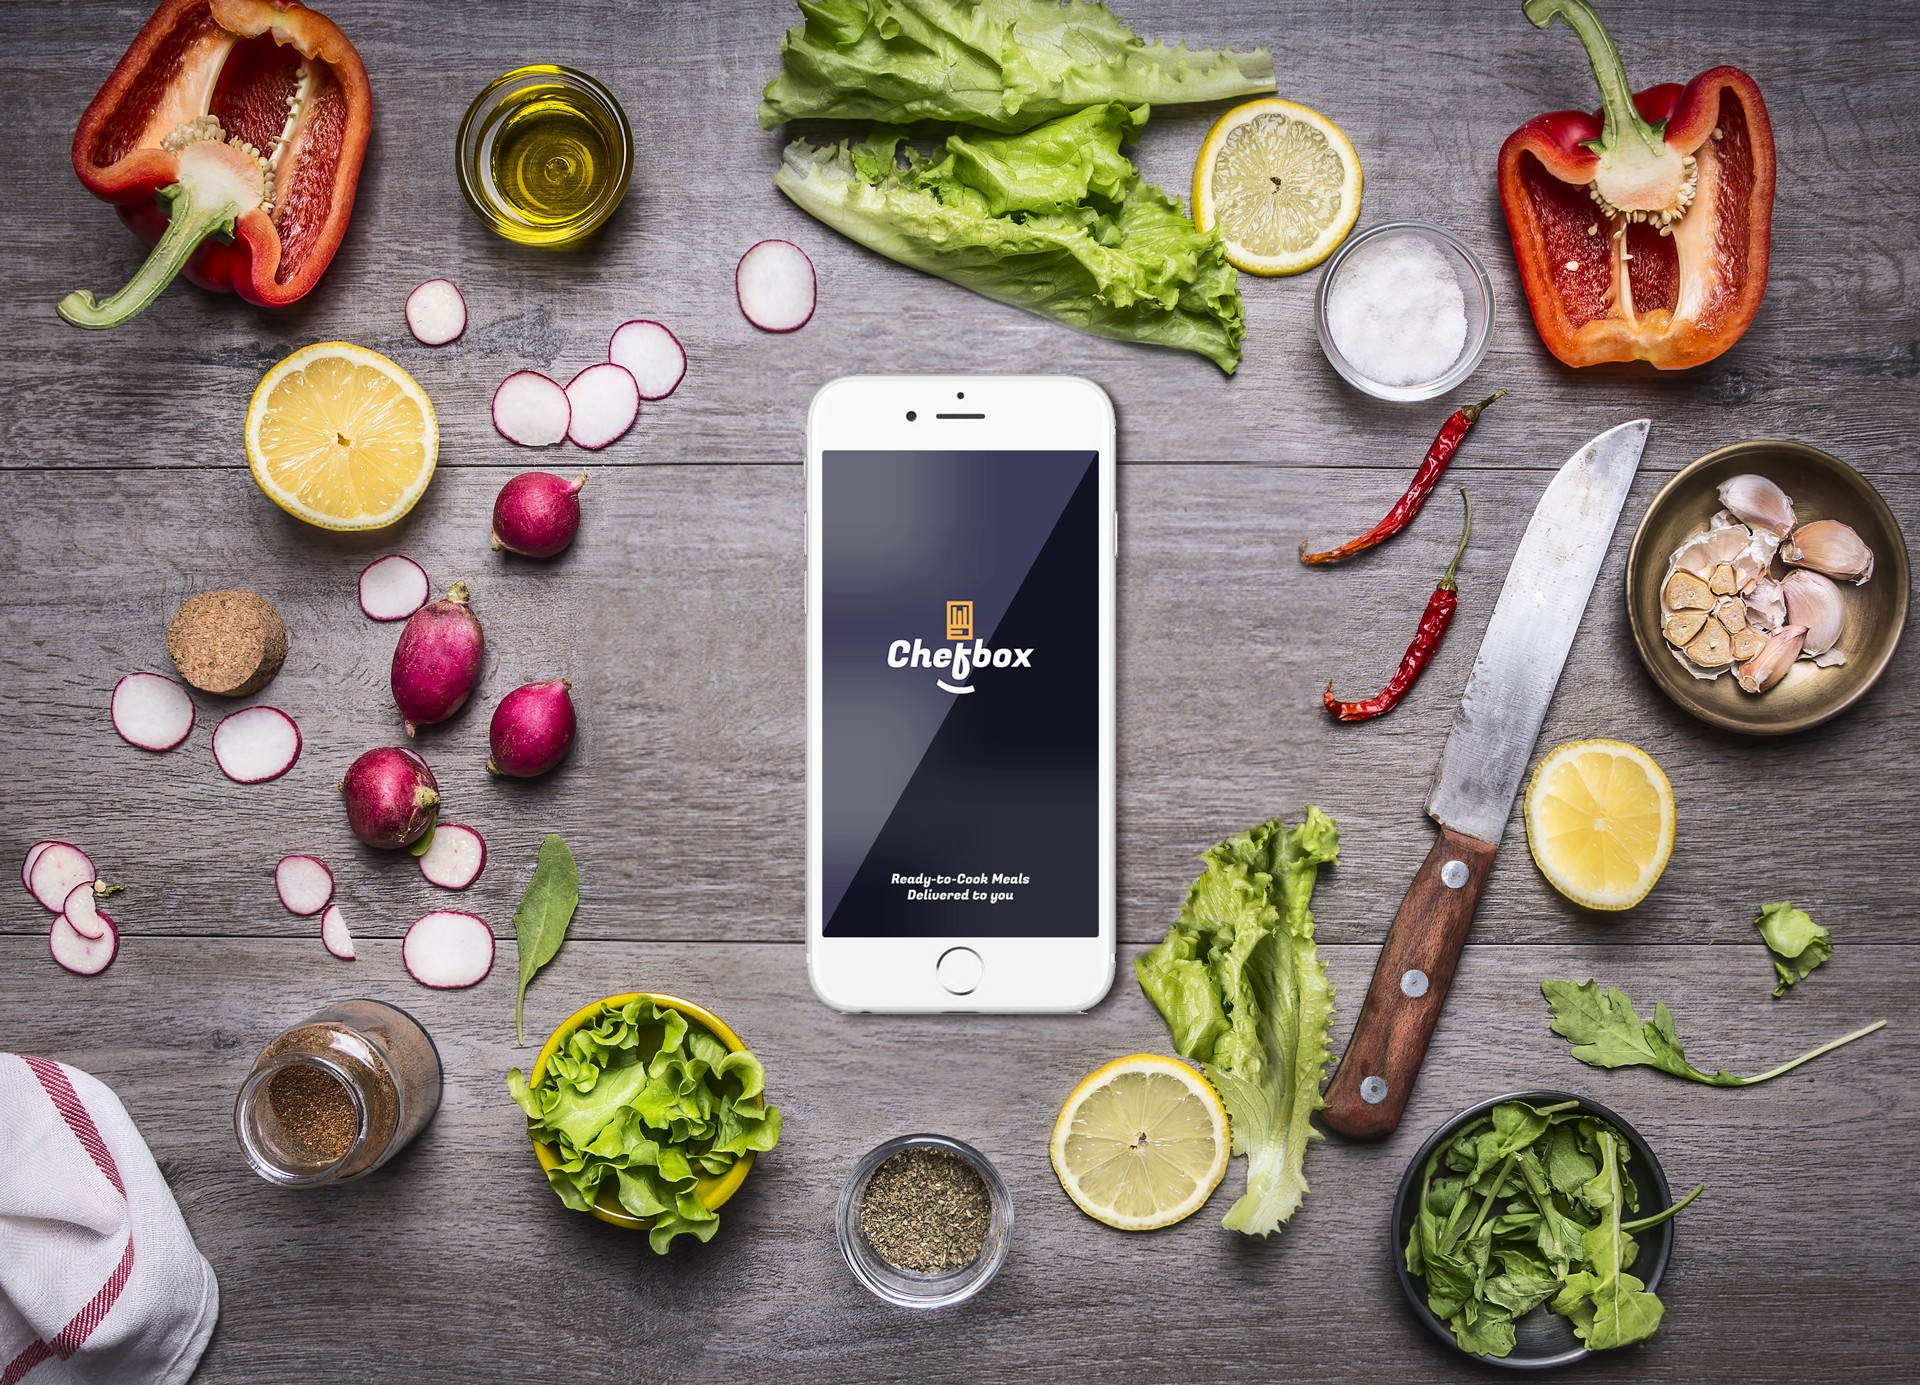 Chefbox app user experience design retrospective muzli design chefbox app is a mobile application concept that combines online groceries delivery with recipes users can place an order for ready to cook meal boxes forumfinder Gallery